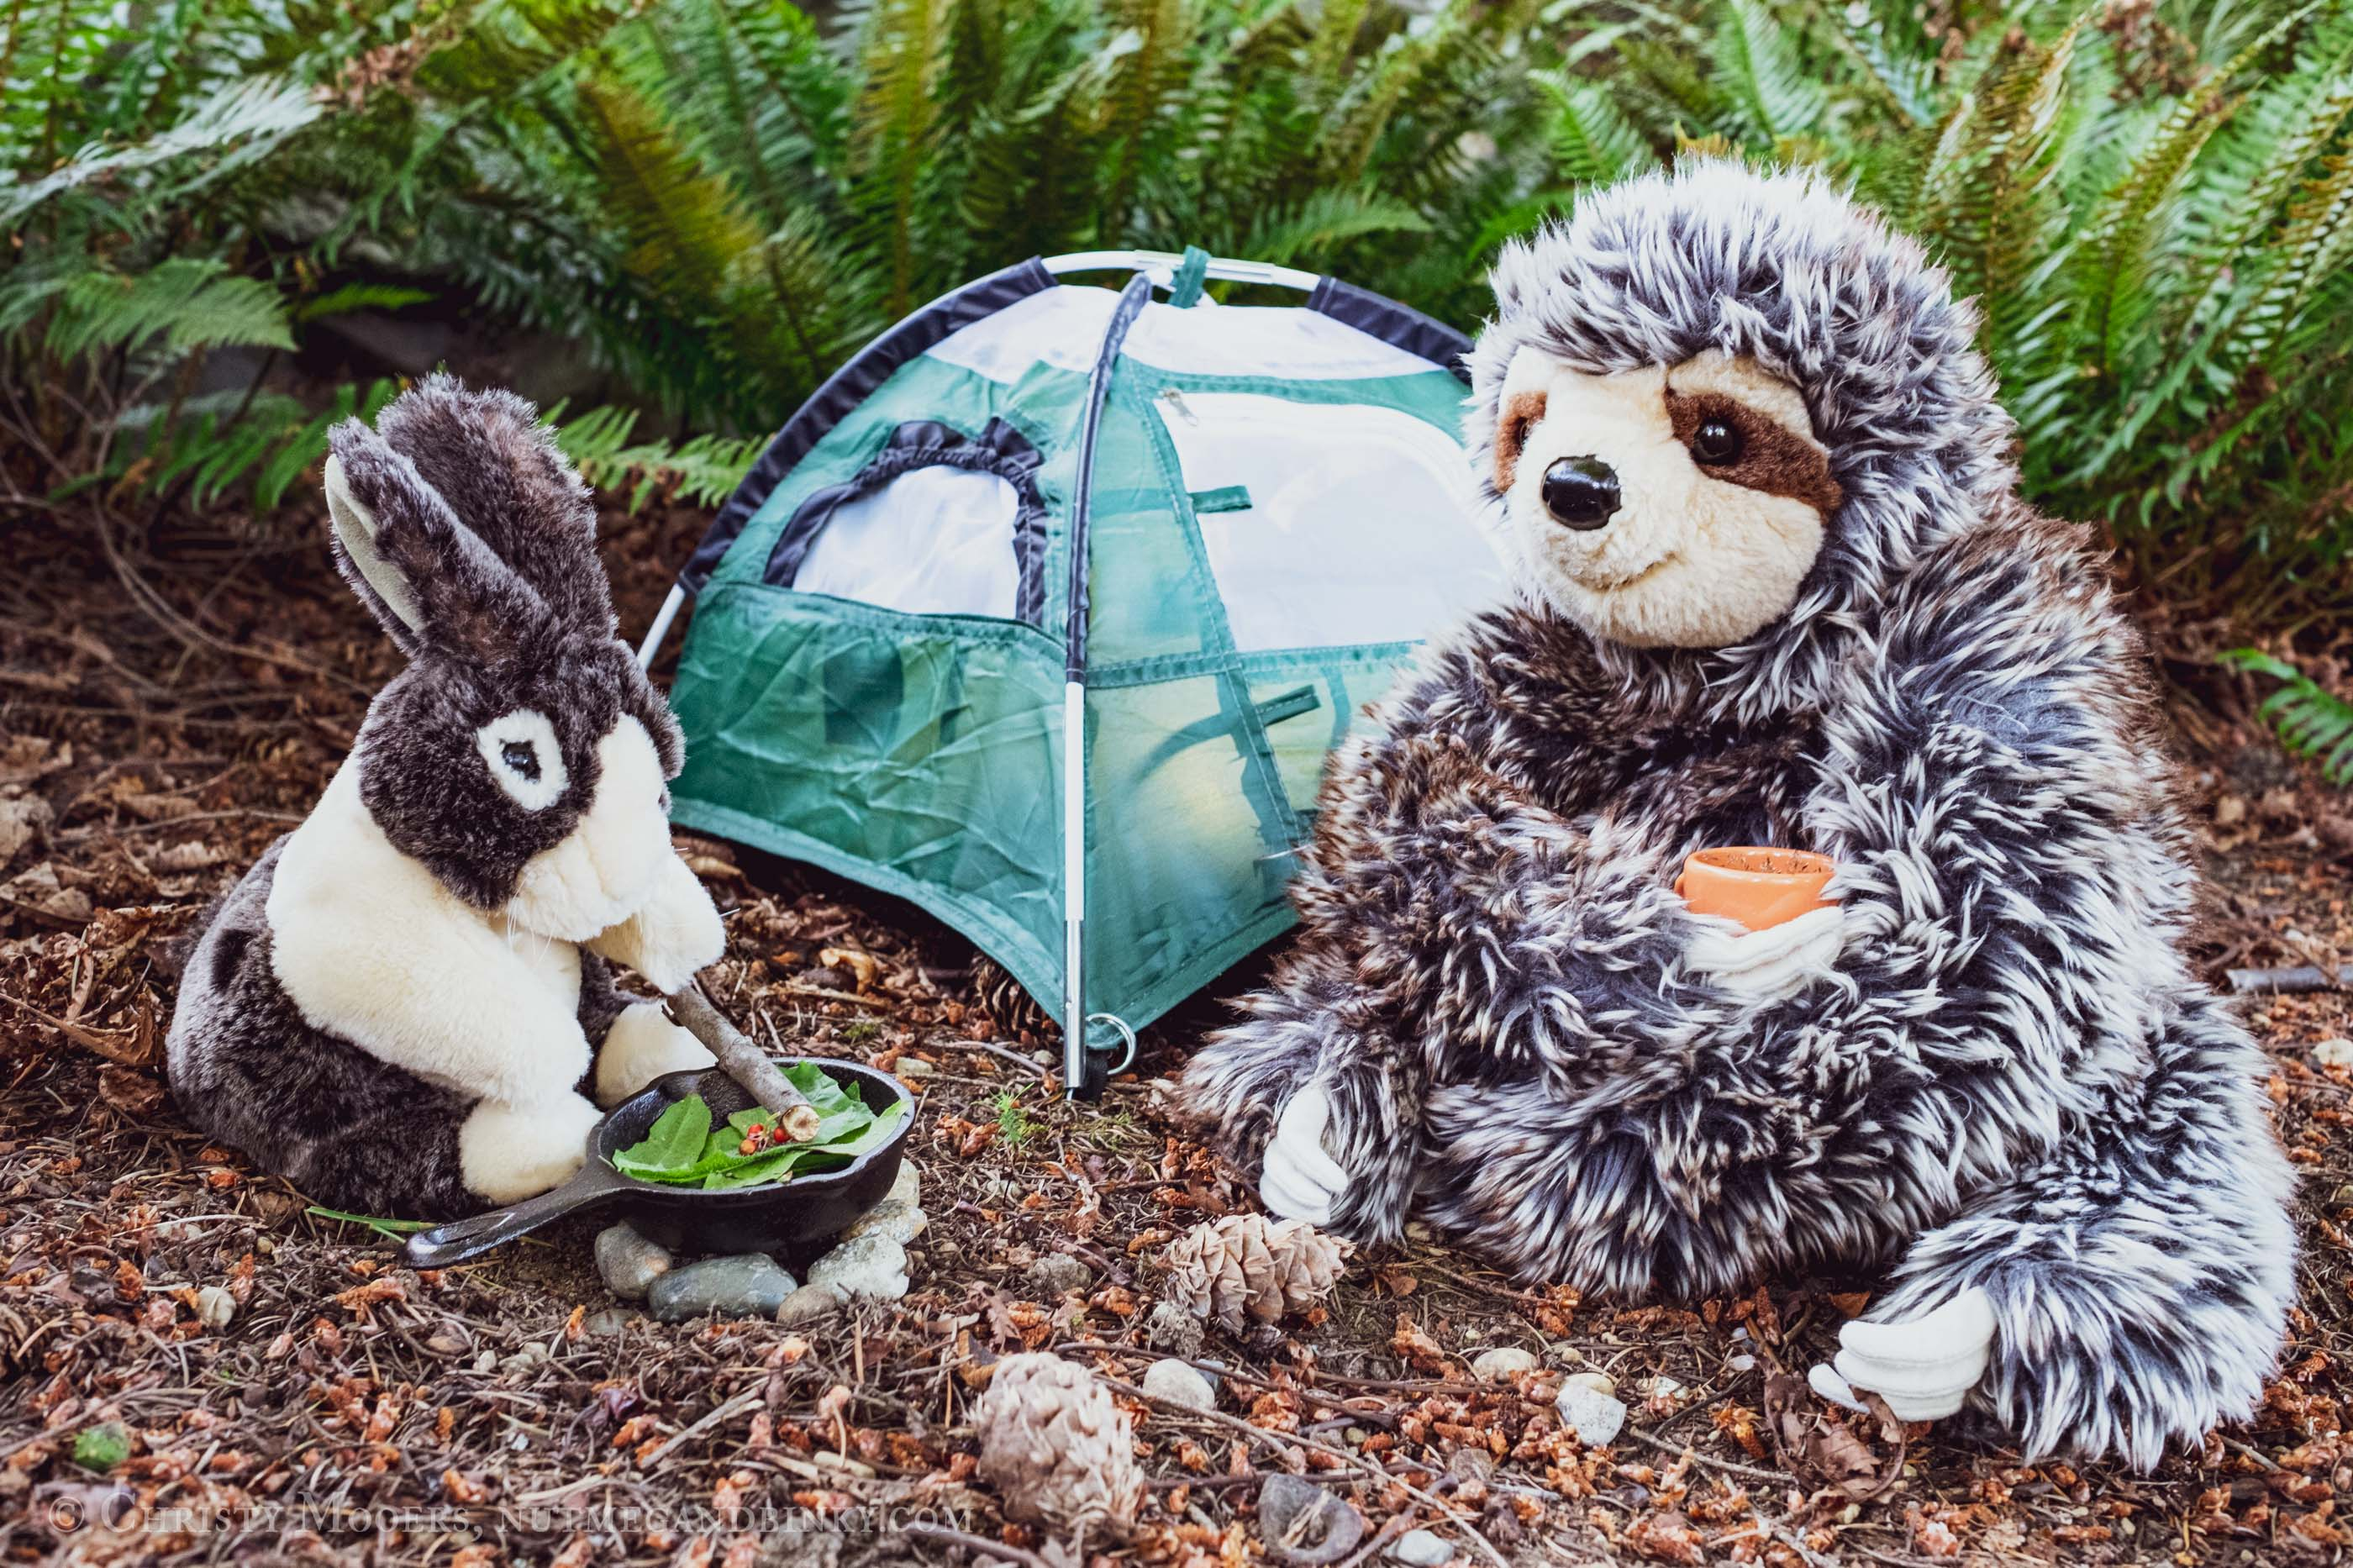 stuffed bunny and sloth camping and cooking food